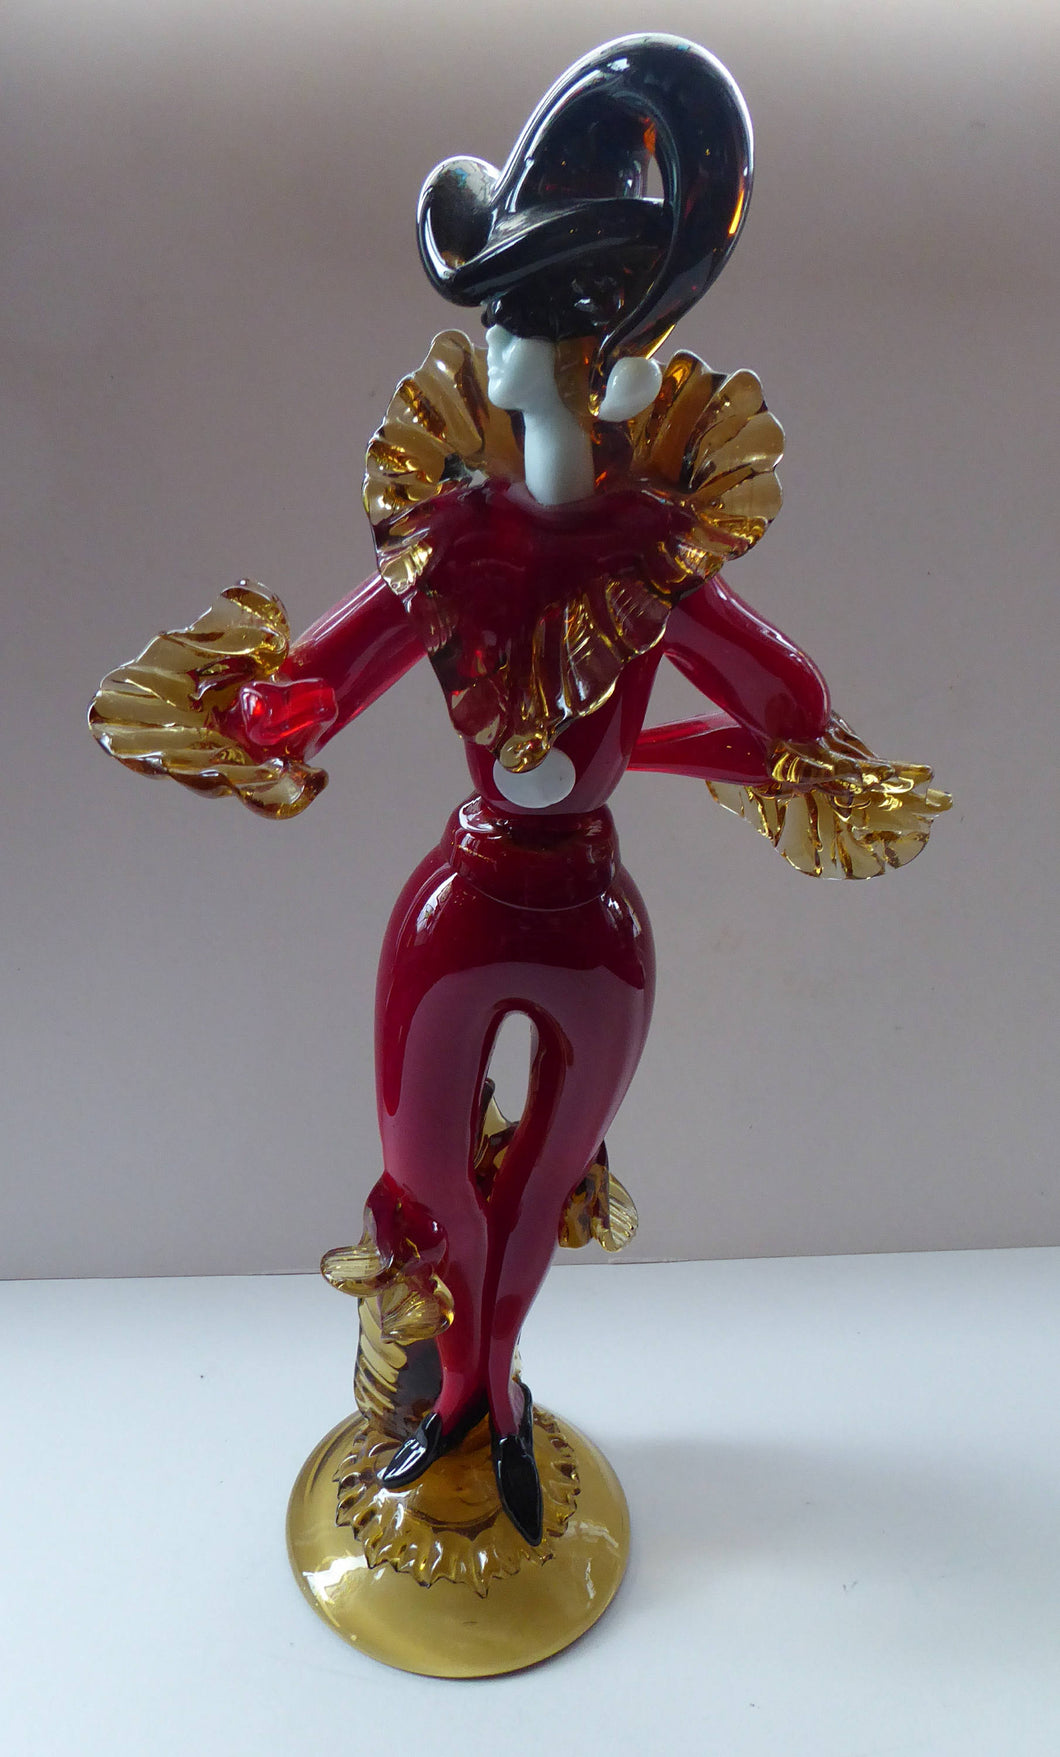 MASSIVE Signed Vintage Italian Murano Glass Pierrot / Comdia Dell' Arte Figurine by Franco Toffolo. 18 inches in height